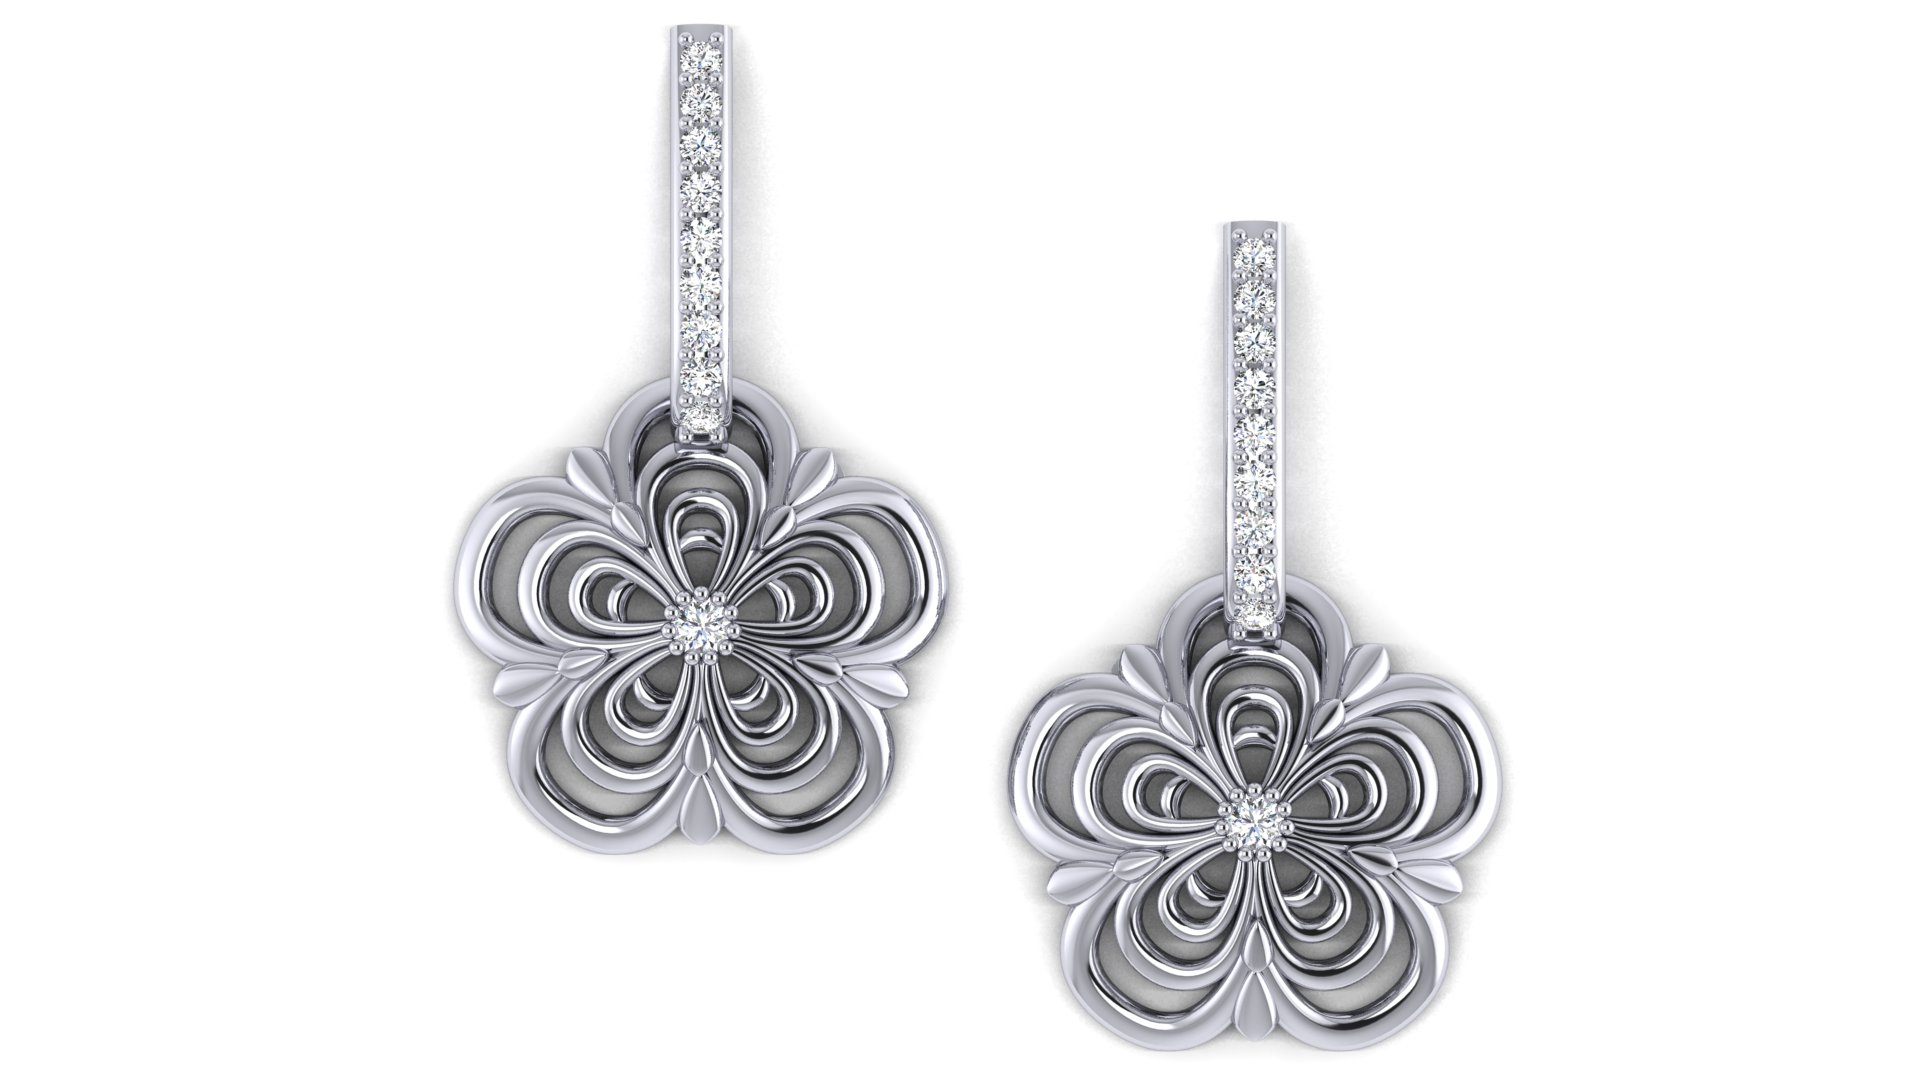 Flower Design Silver Earrings